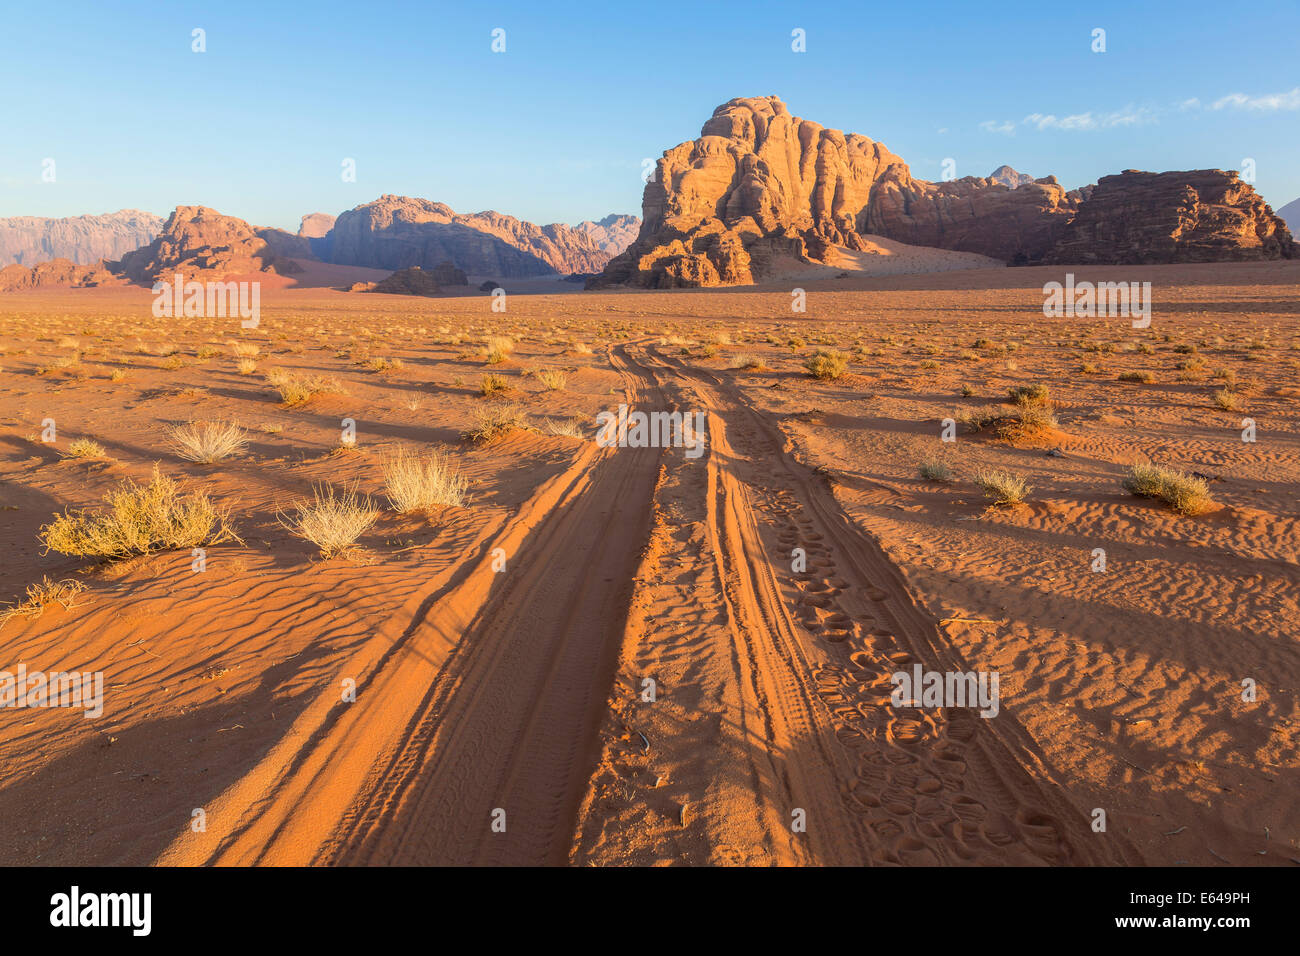 Tracks in the desert, Wadi Rum, Jordan - Stock Image